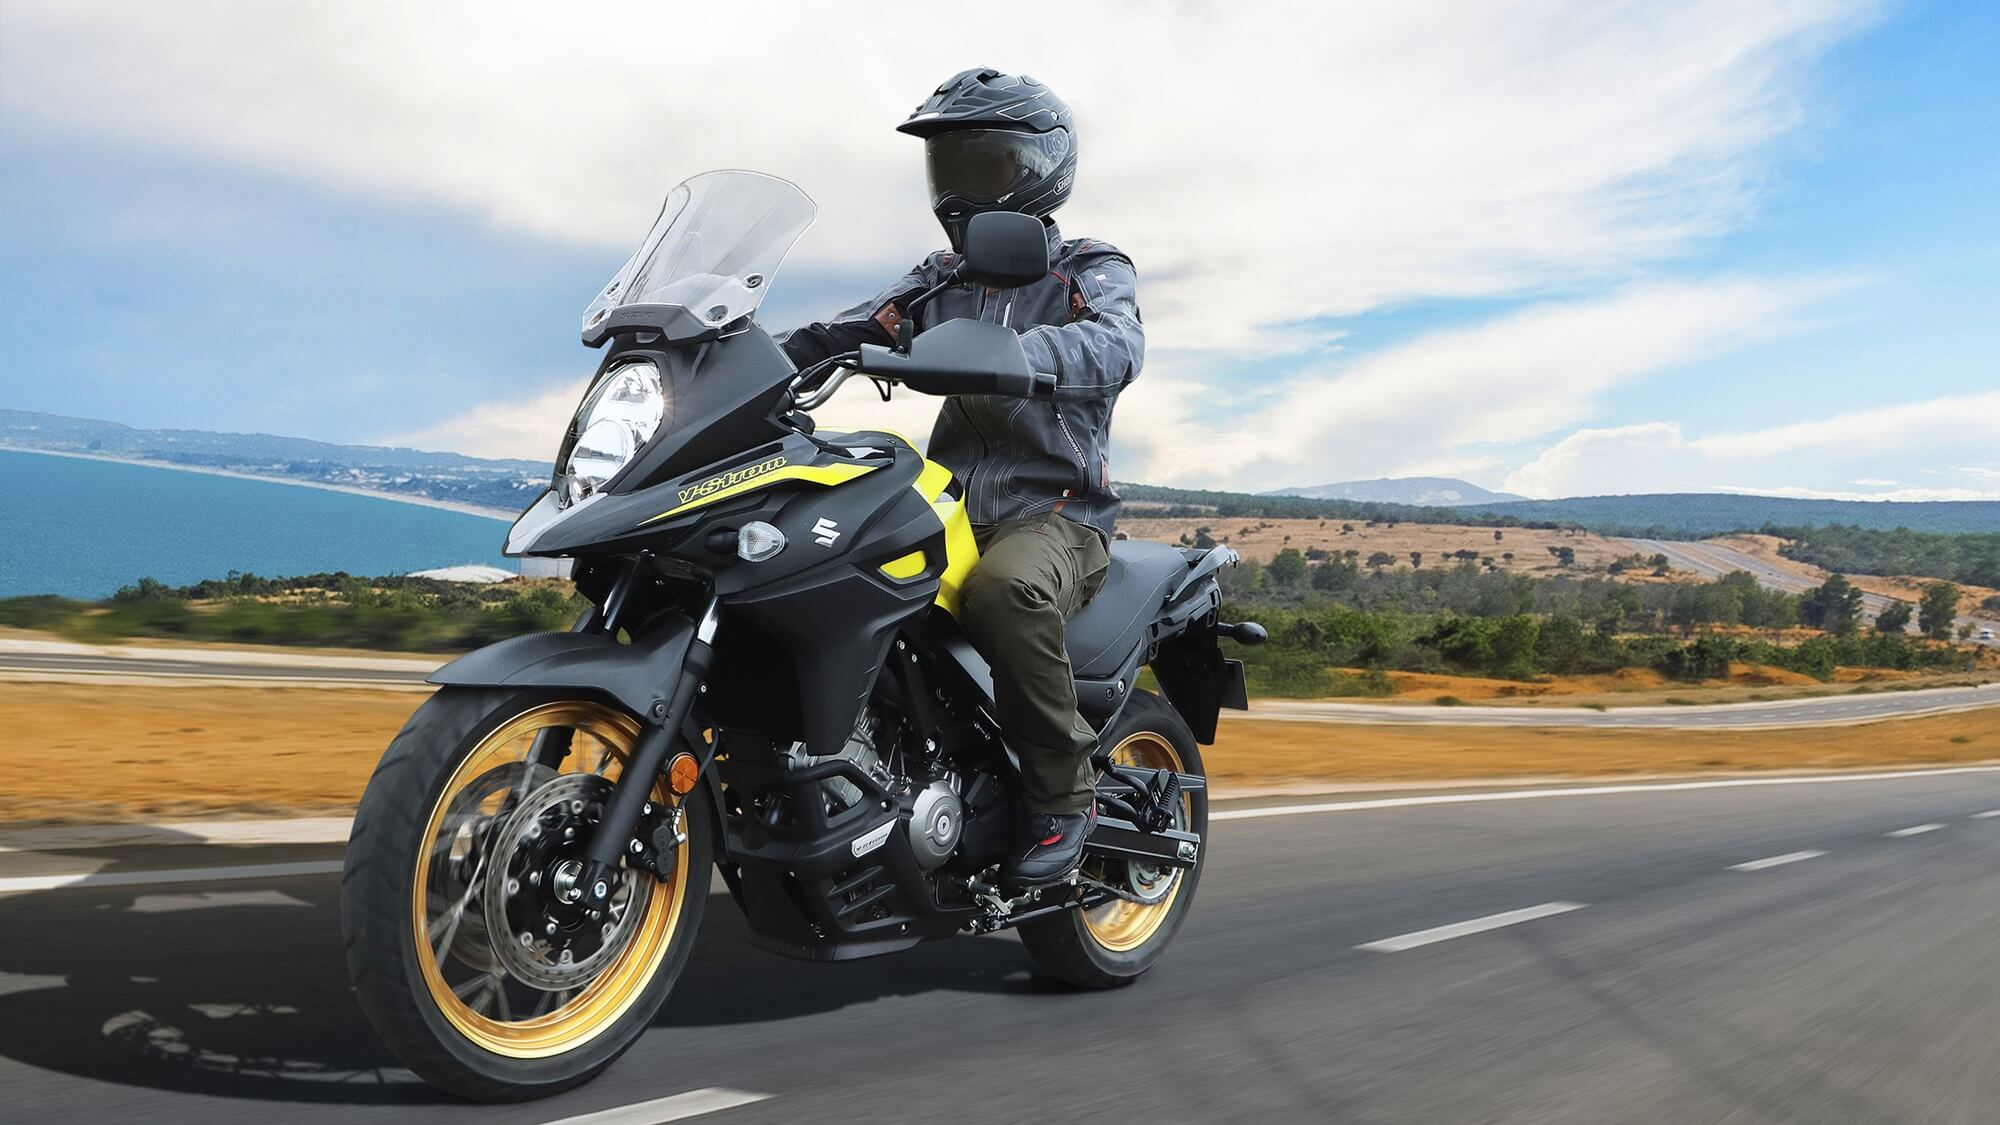 Suzuki V-Strom 650 XT ABS launched at 7.46 lakh